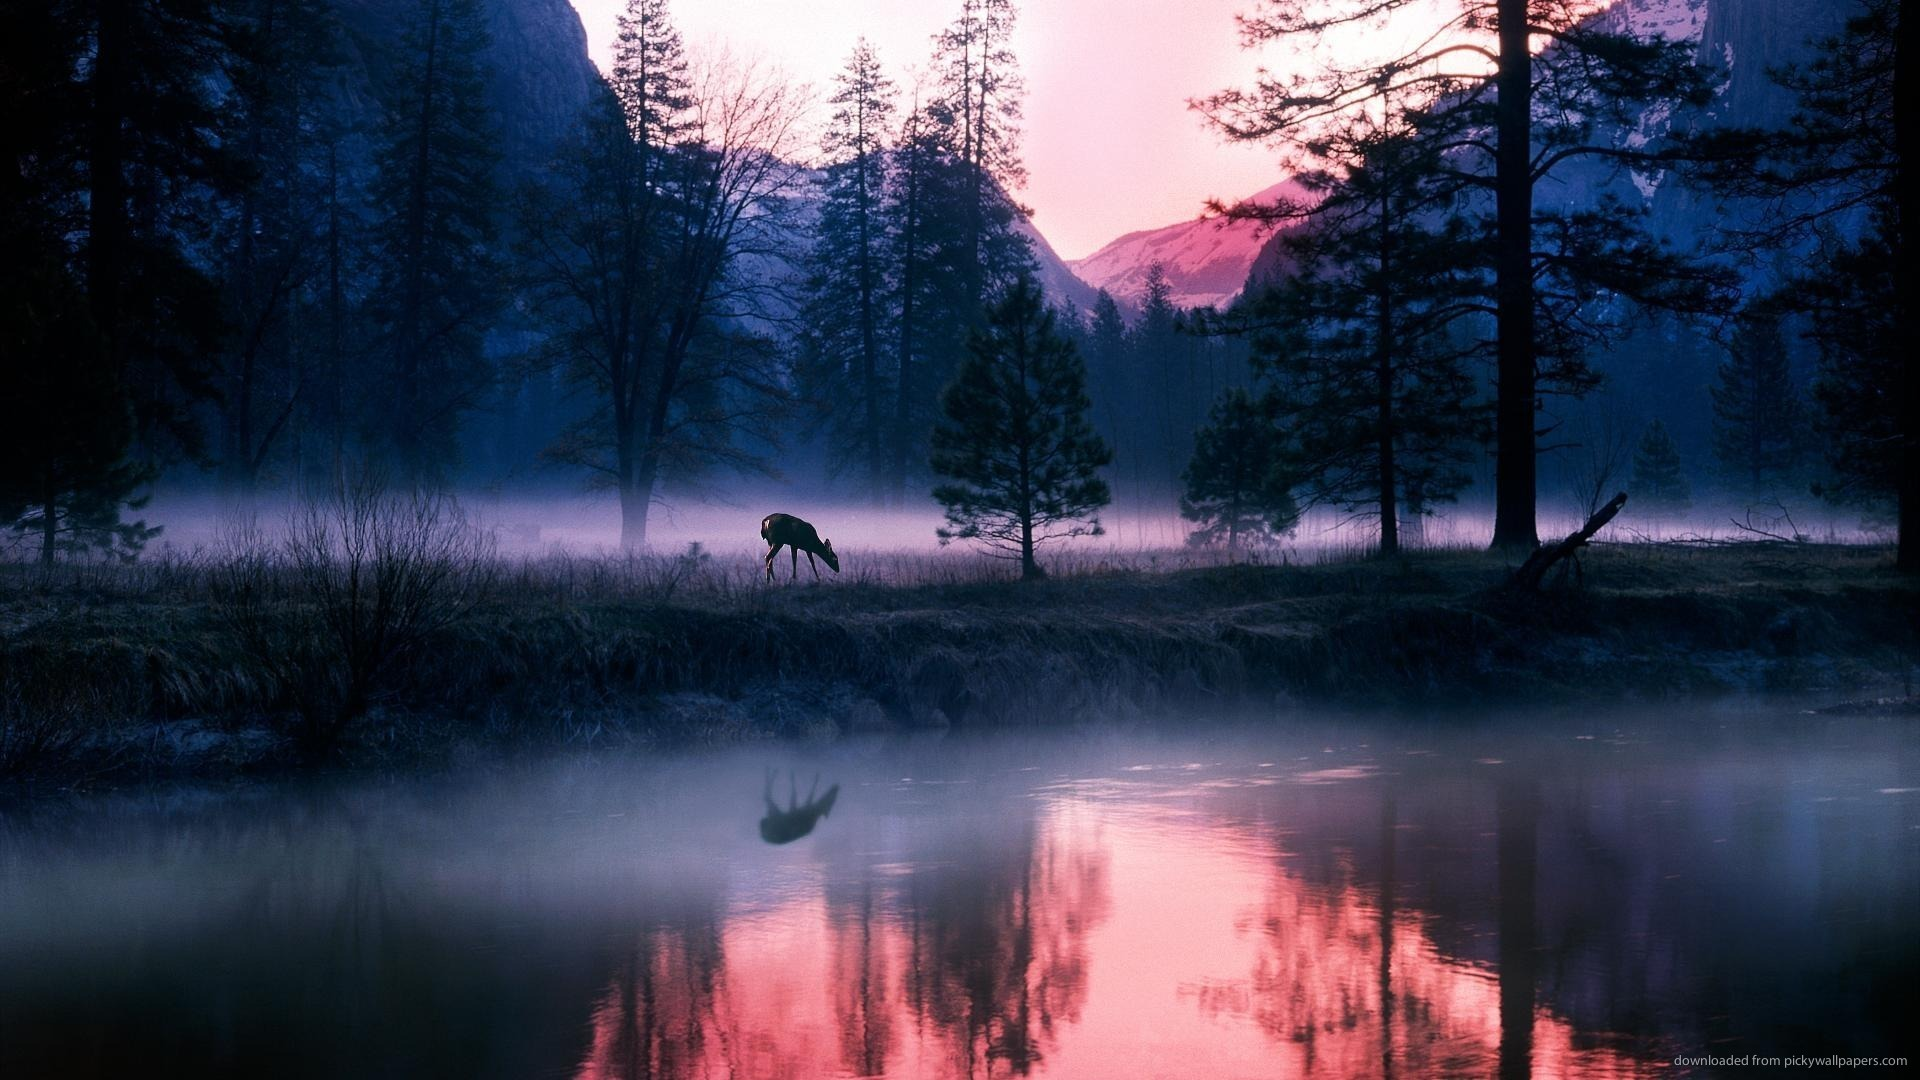 night-in-yosemite-national-park